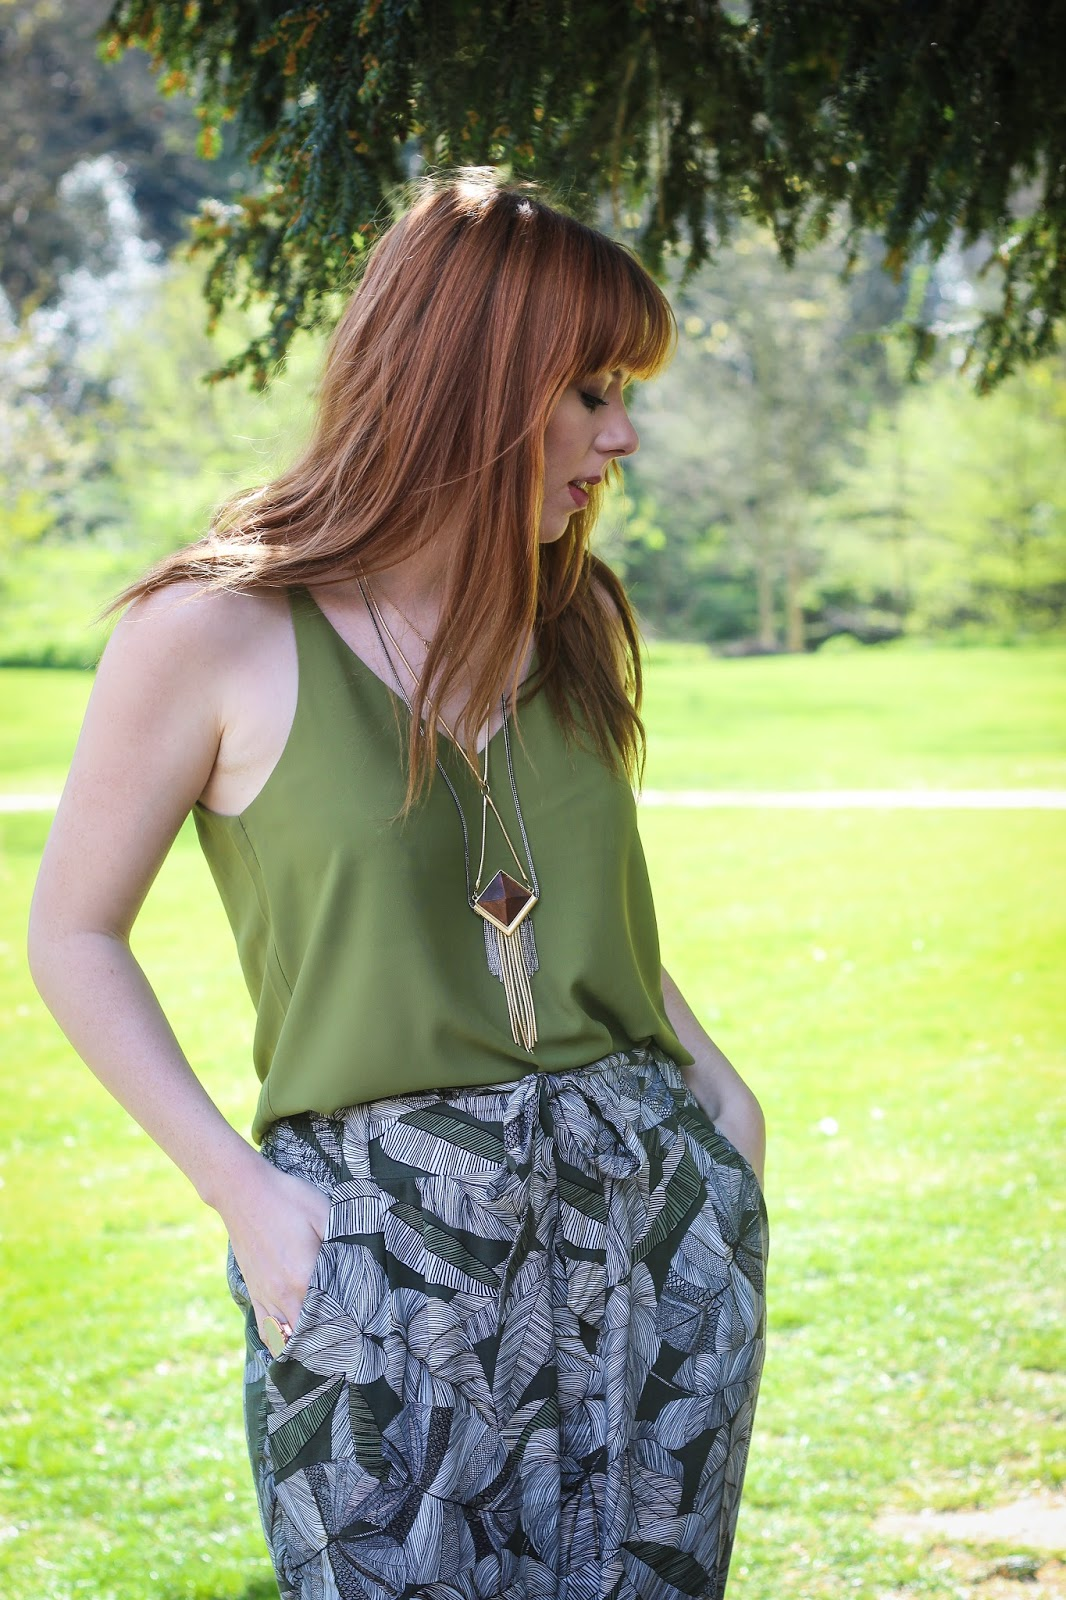 Topshop Green Cami Top - The Goodowl